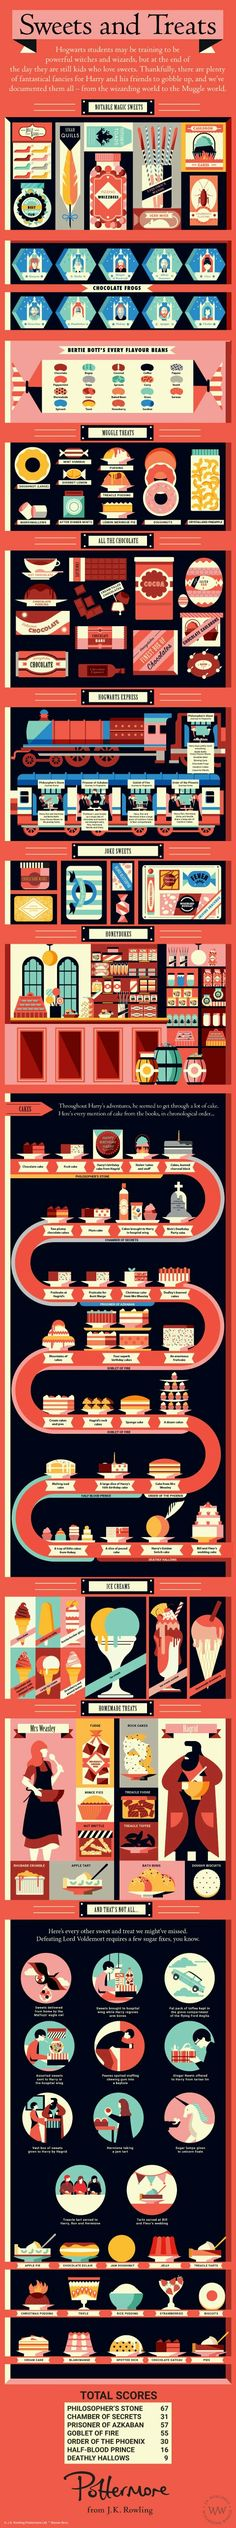 Sweets and Treats Harry Potter Poster/Infographic